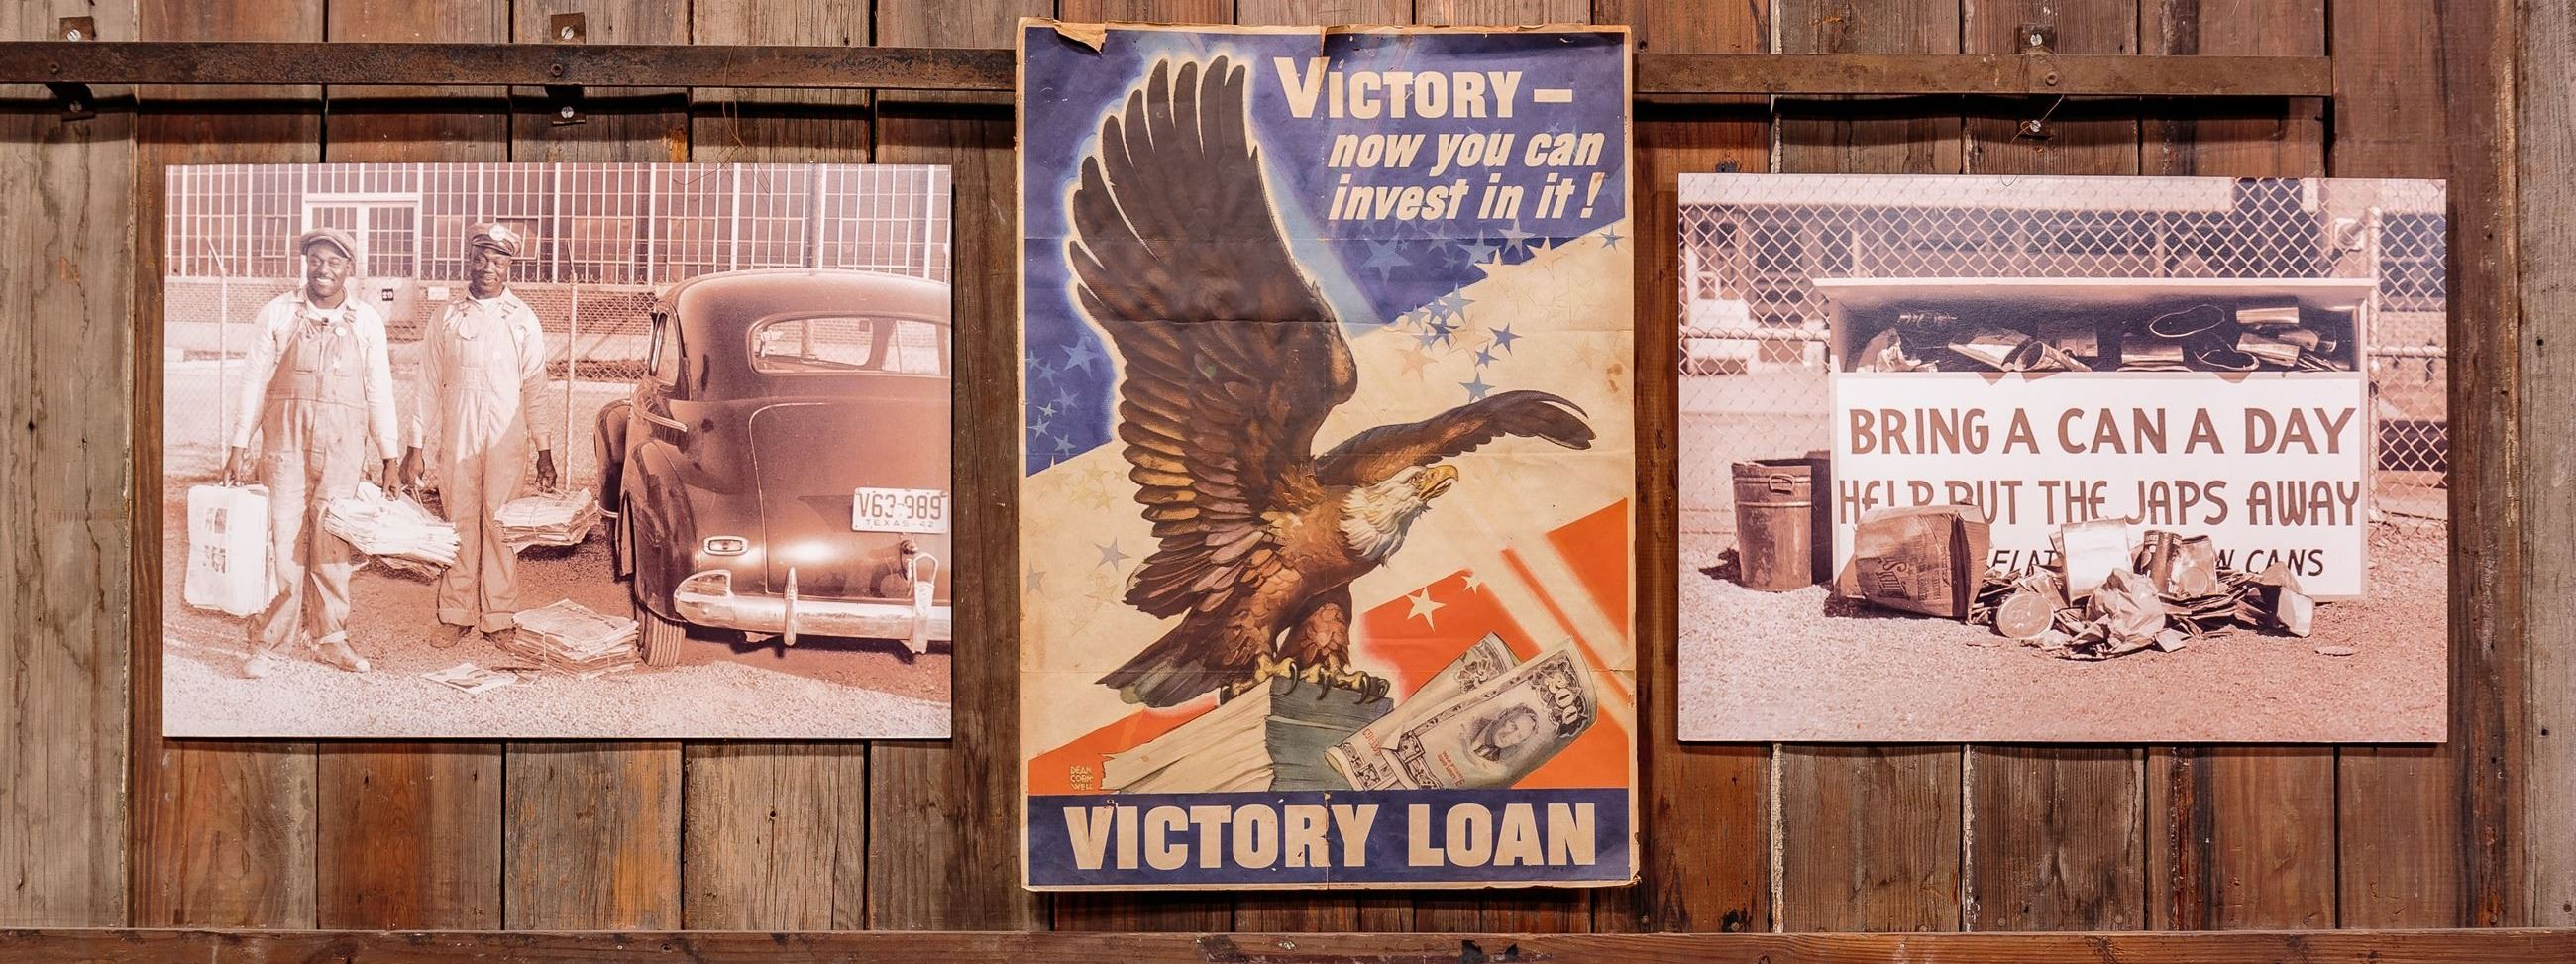 Posters on display in Landmark Museum